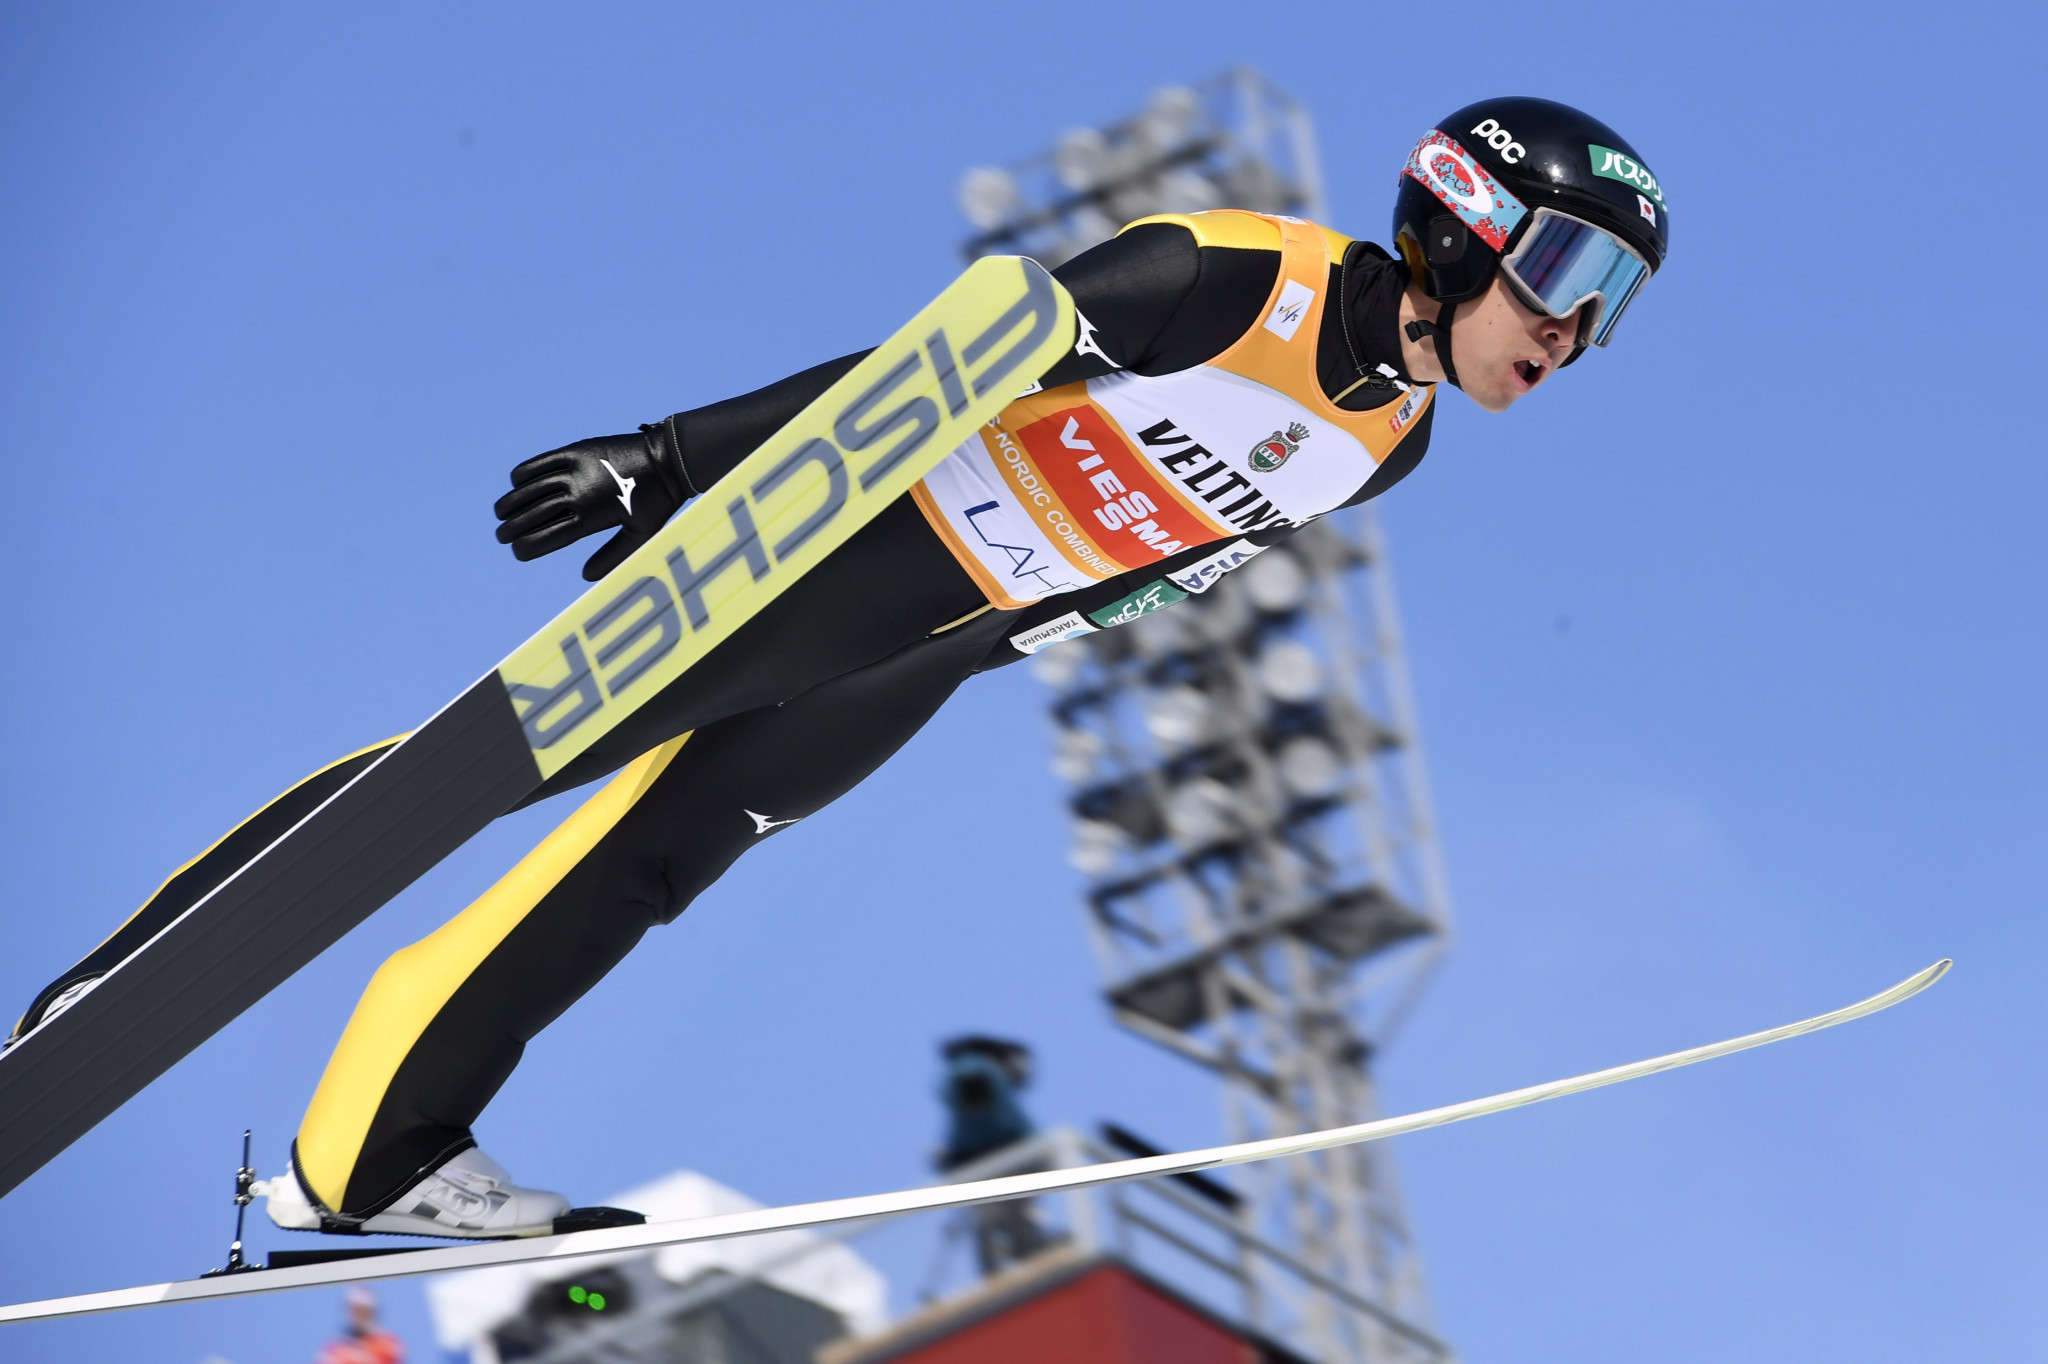 Watabe holds of Riessle to win Nordic Combined World Cup in Oslo